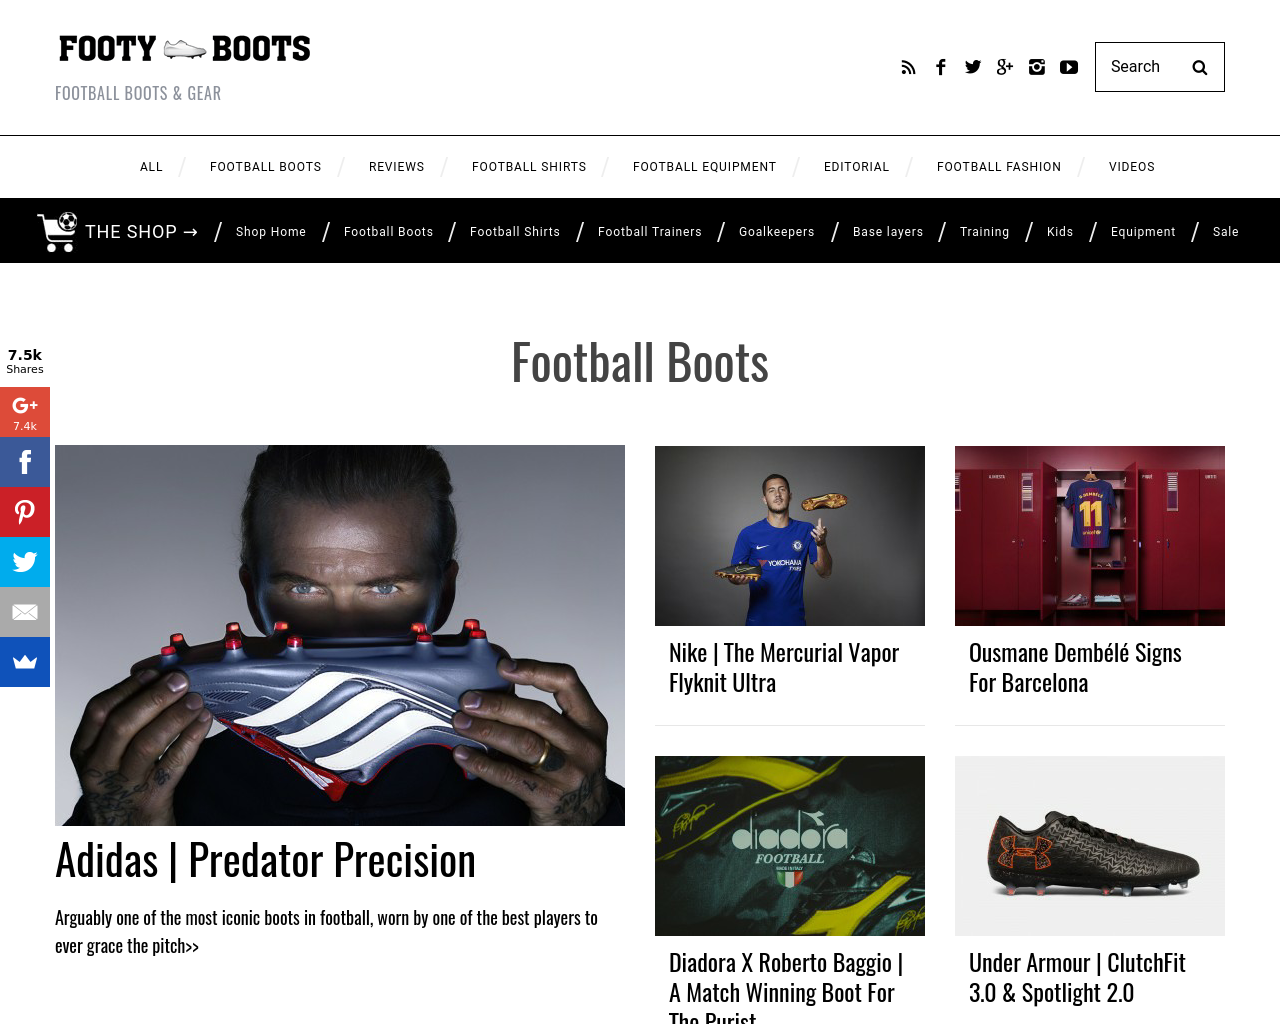 Footy-Boots-Advertising-Reviews-Pricing